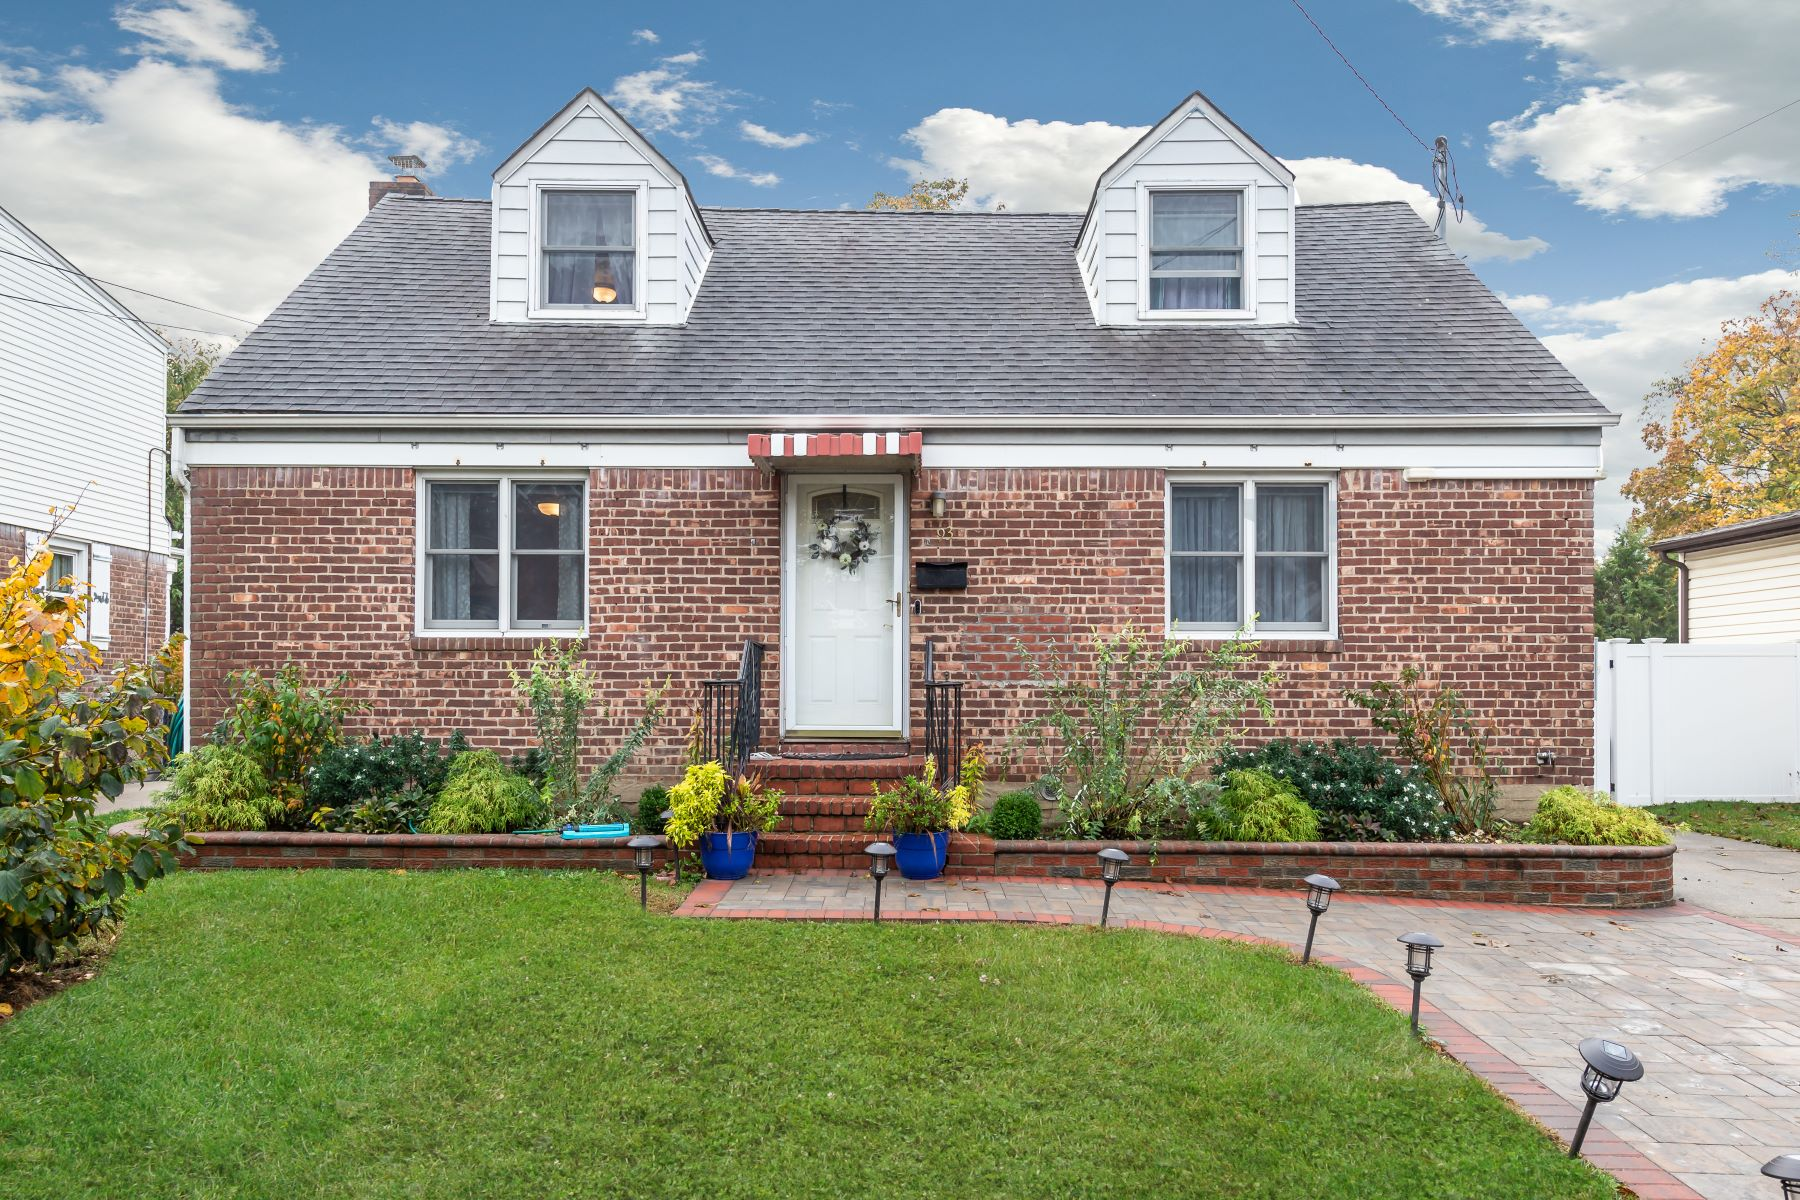 Single Family Homes for Sale at Carle Place 93 Roosevelt Court Carle Place, New York 11514 United States